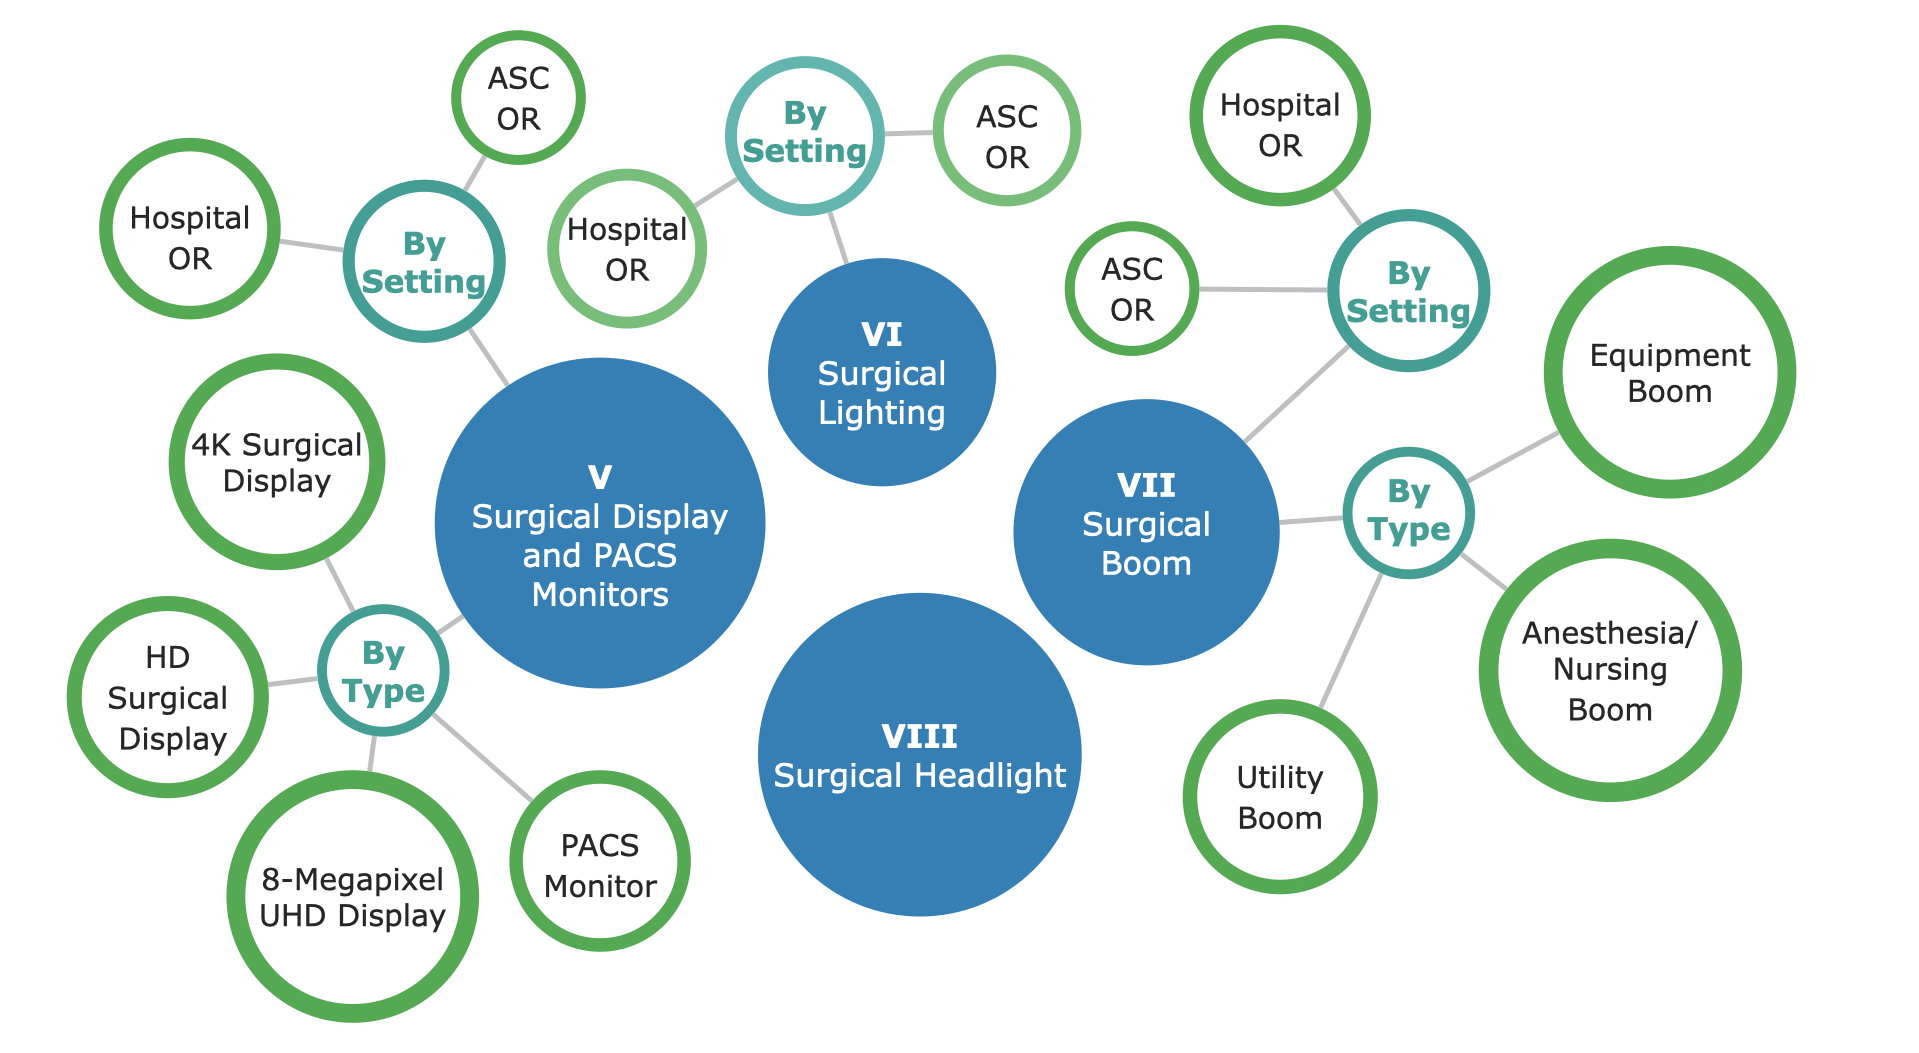 US Operating Room Equipment Market Segmentation - Part 2